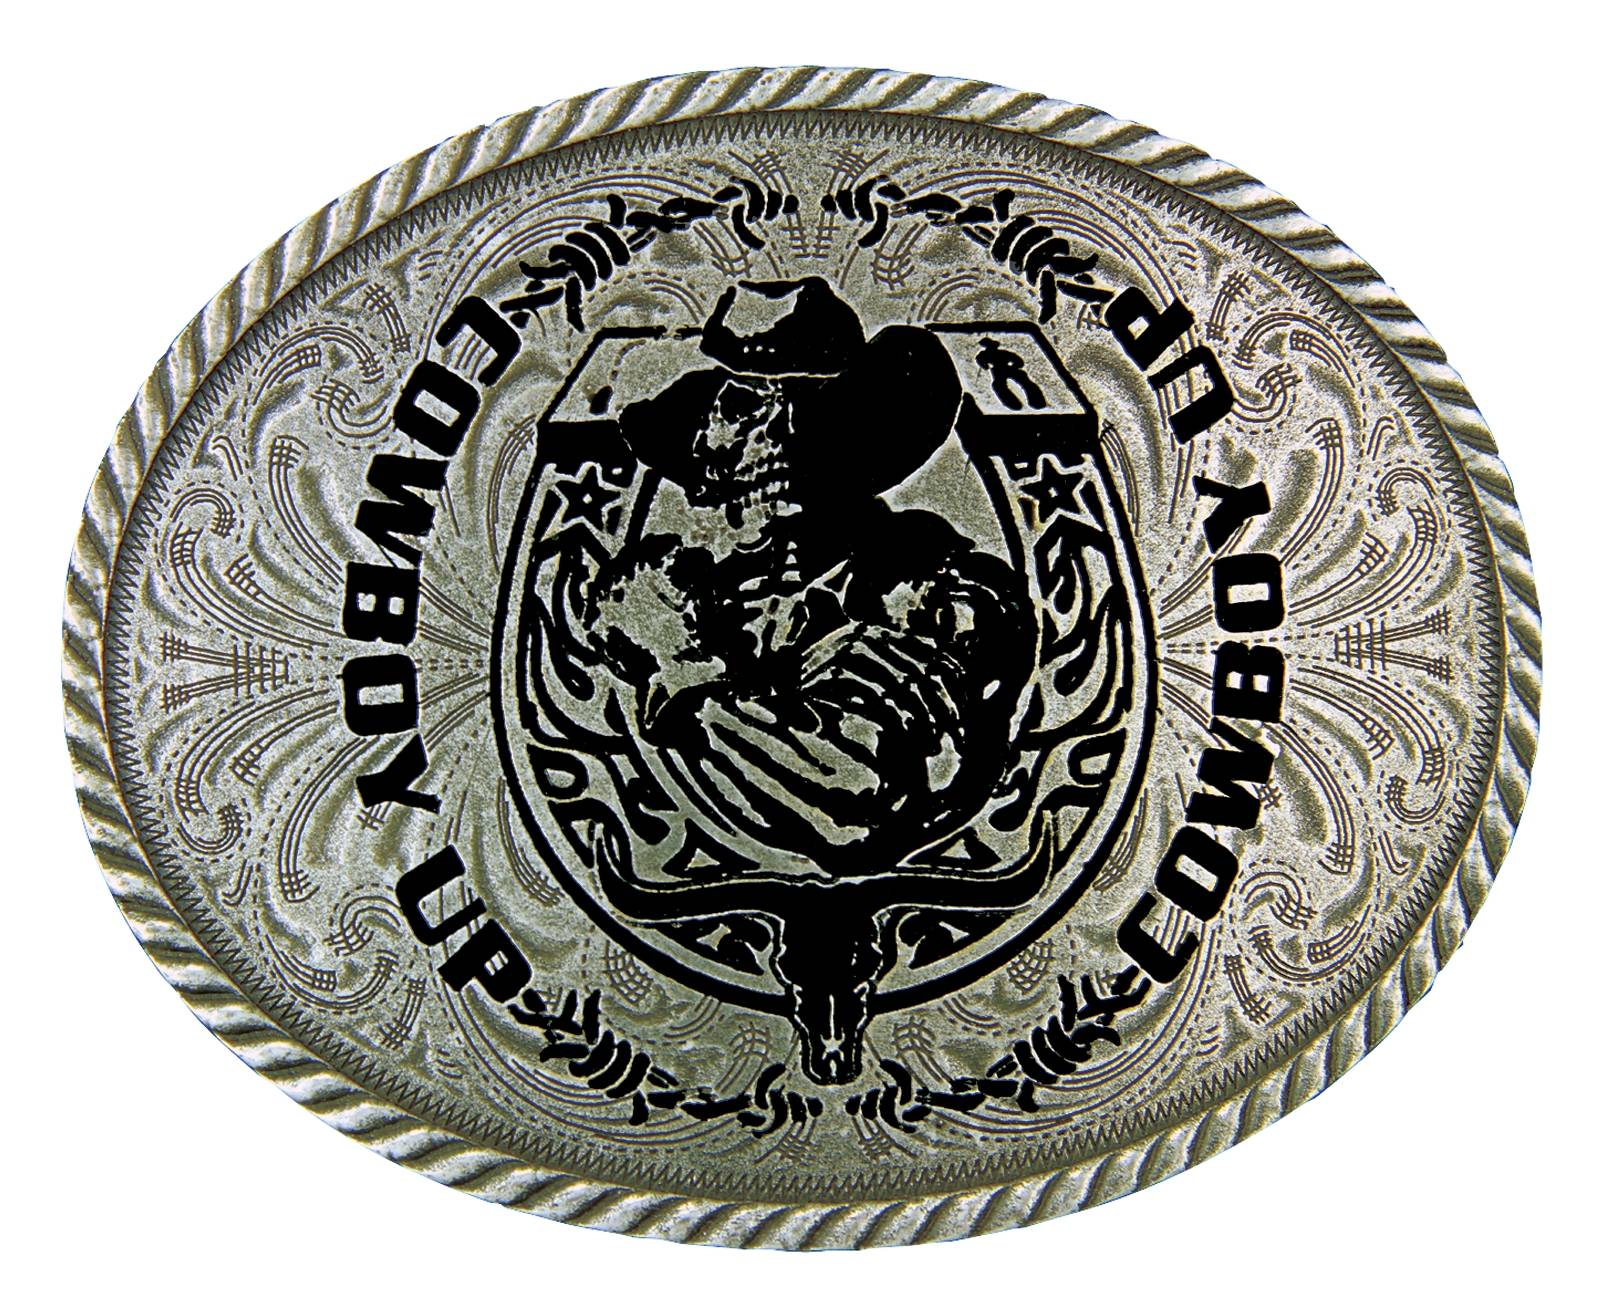 Montana Silversmiths Cowboy Up Ghost Rider Attitude Buckle